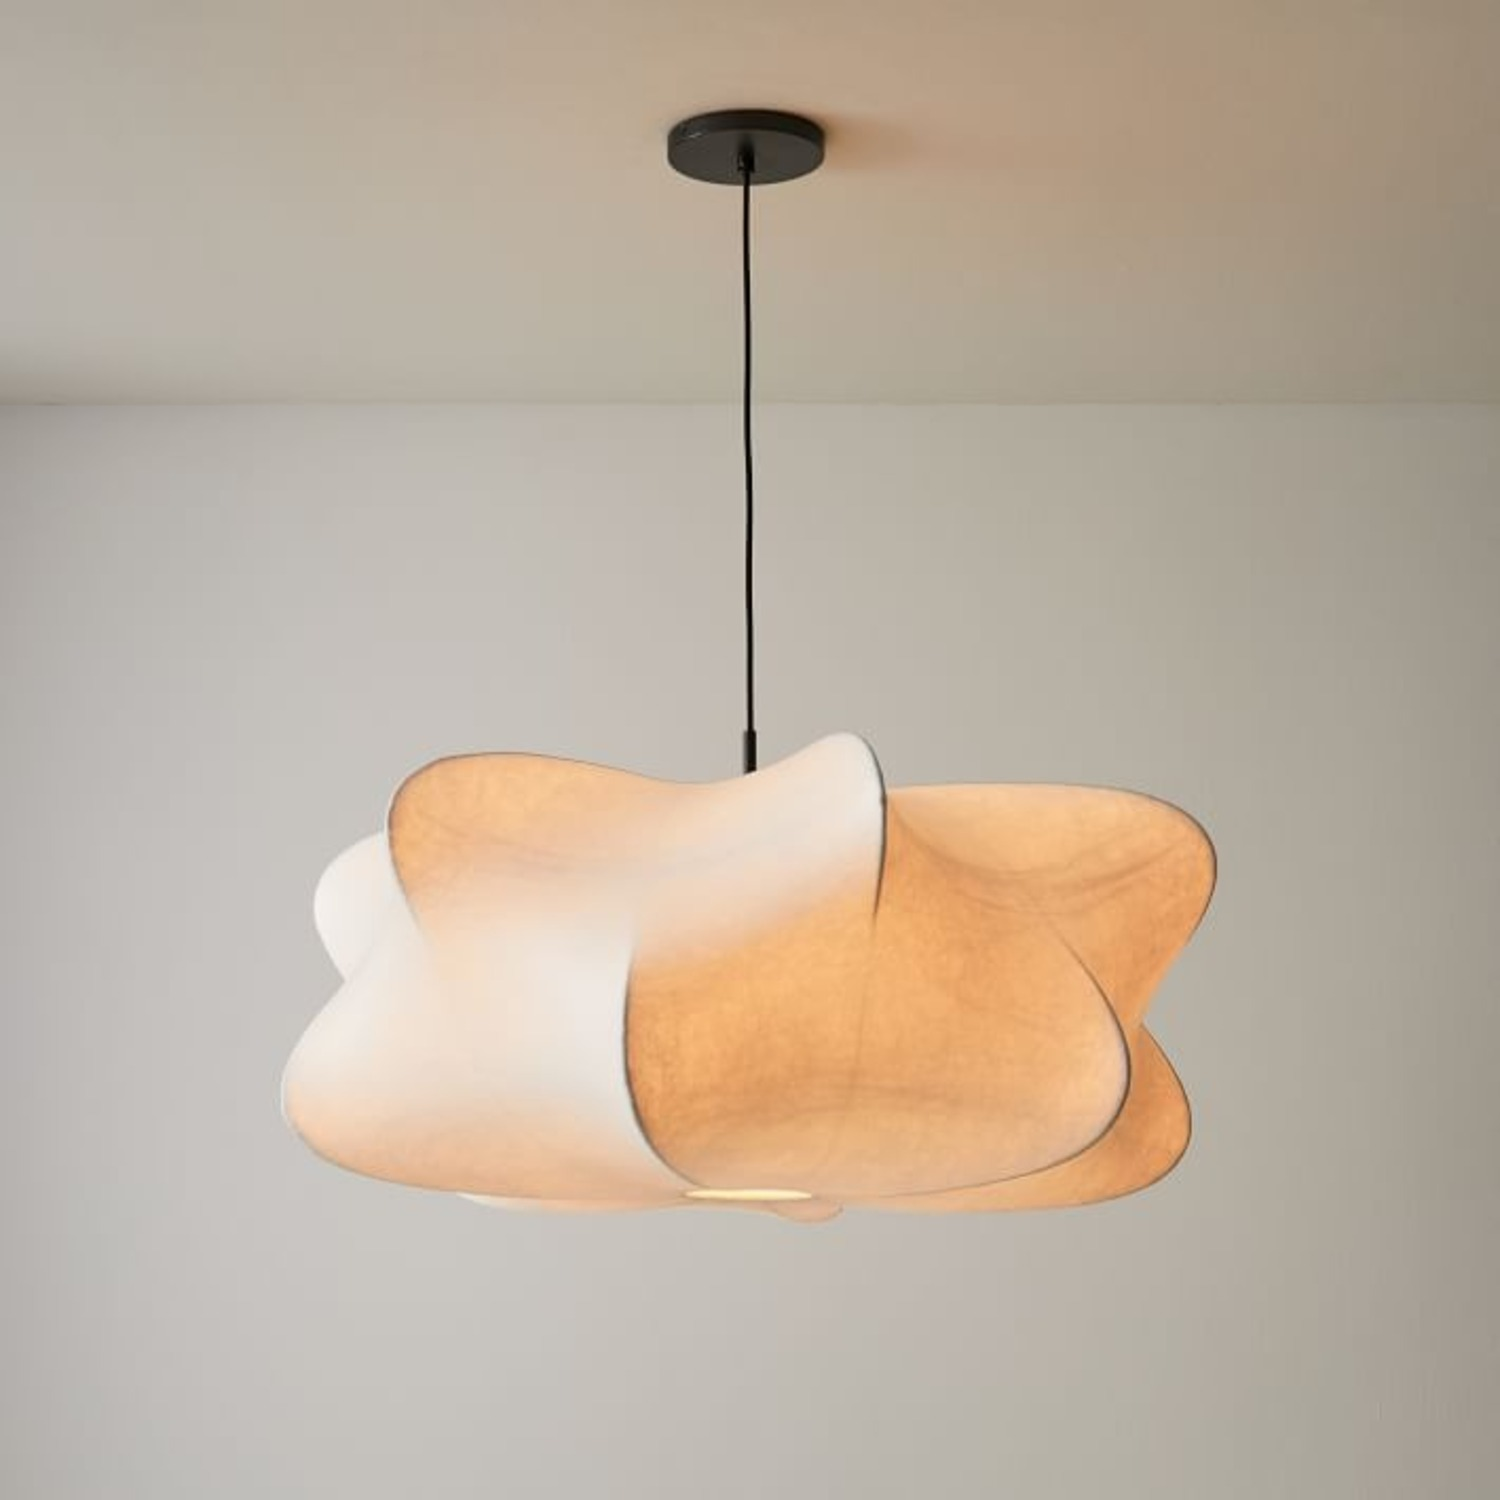 West Elm Cirrus Pendant, White, Dark Bronze - image-3